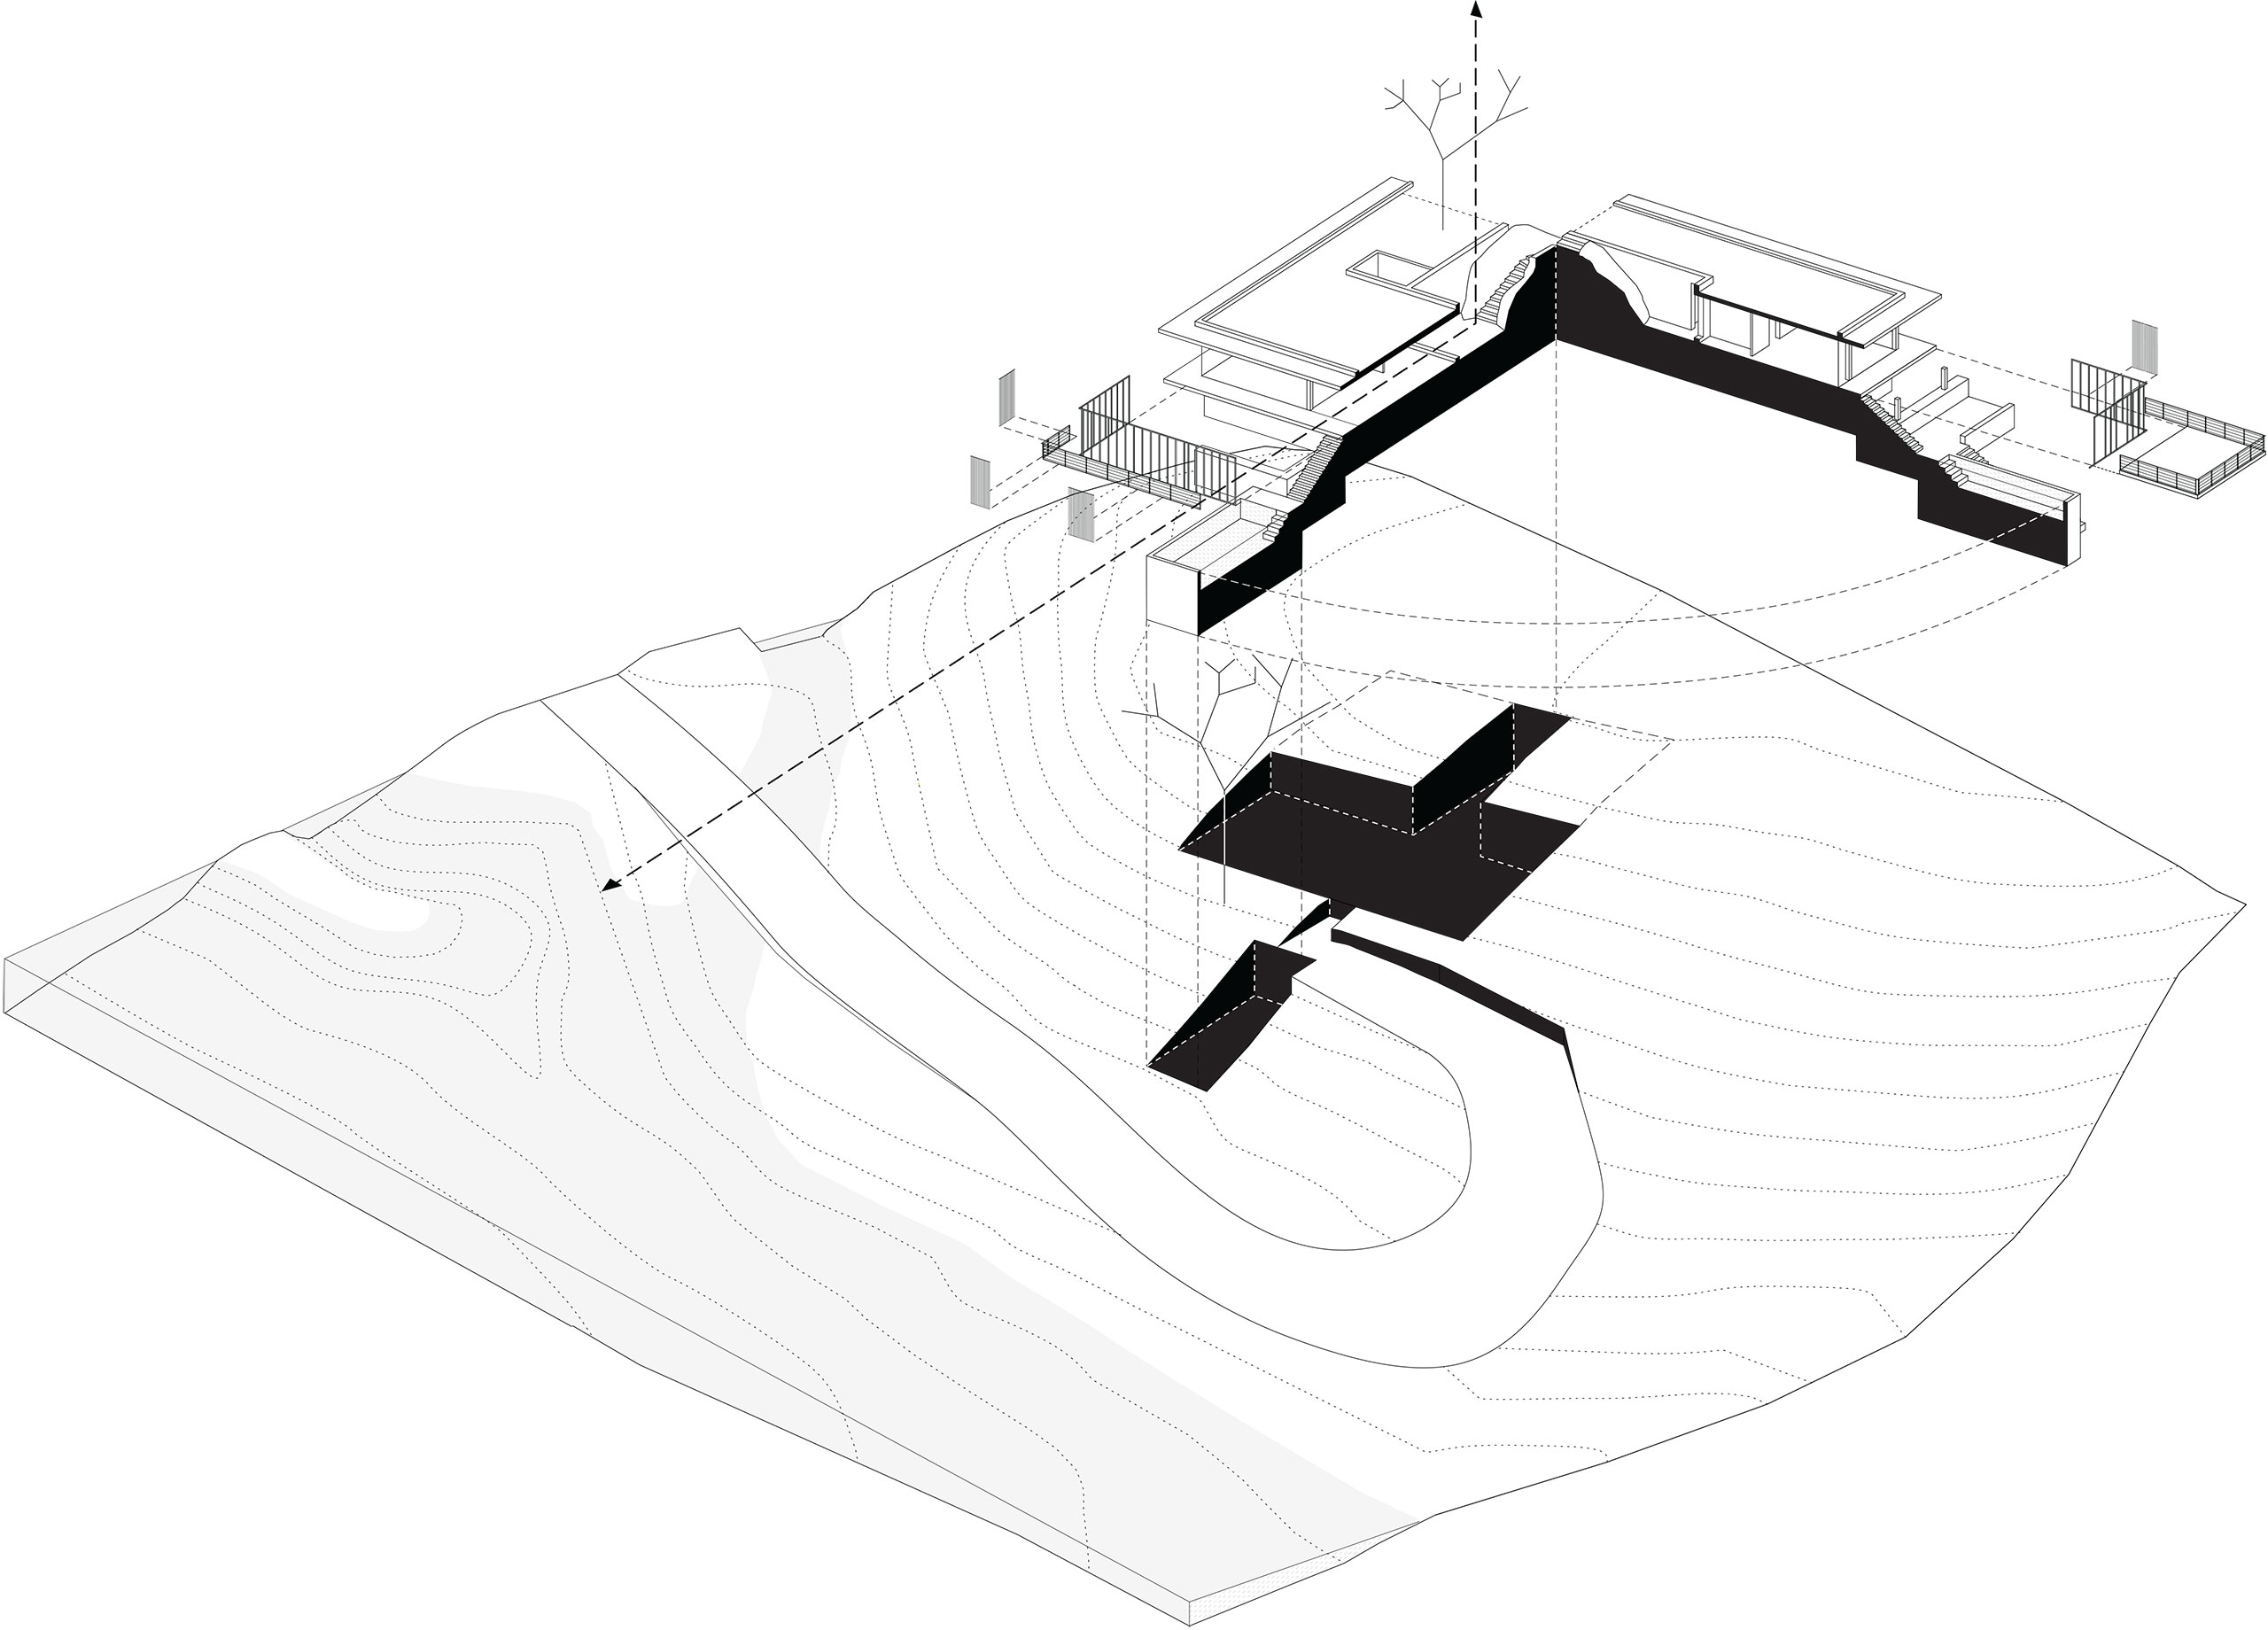 Riparian House sectional axonometric